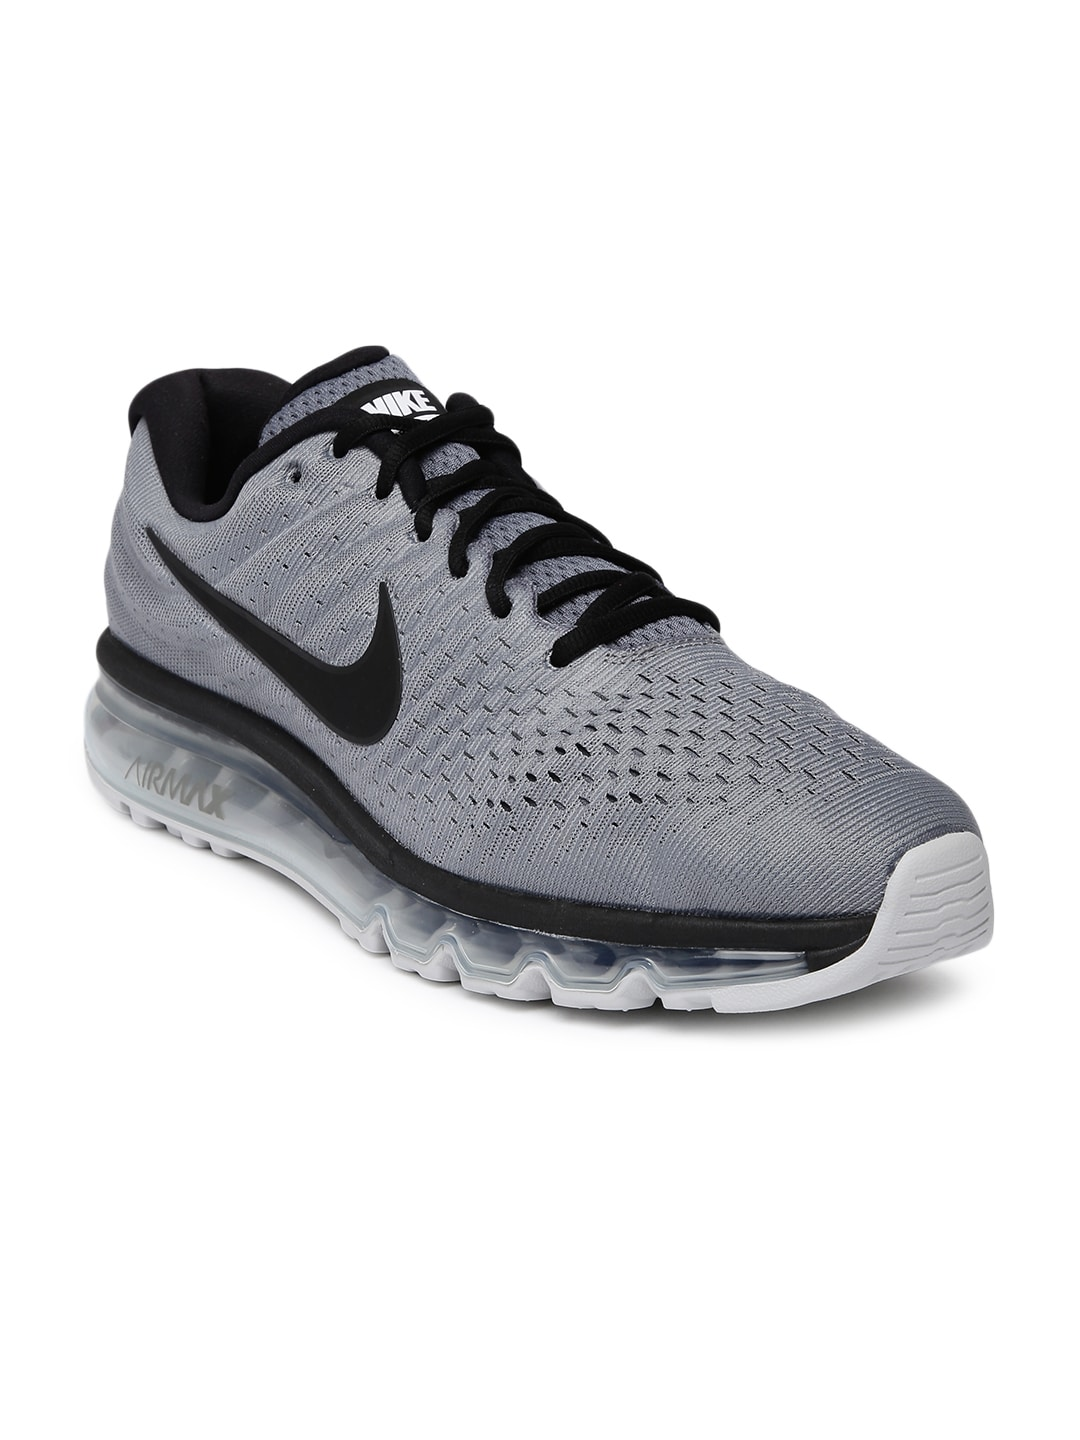 buy online ceacc ebb1b Nike Air Max Shoes - Buy Nike Air Max Shoes Online for Men   Women